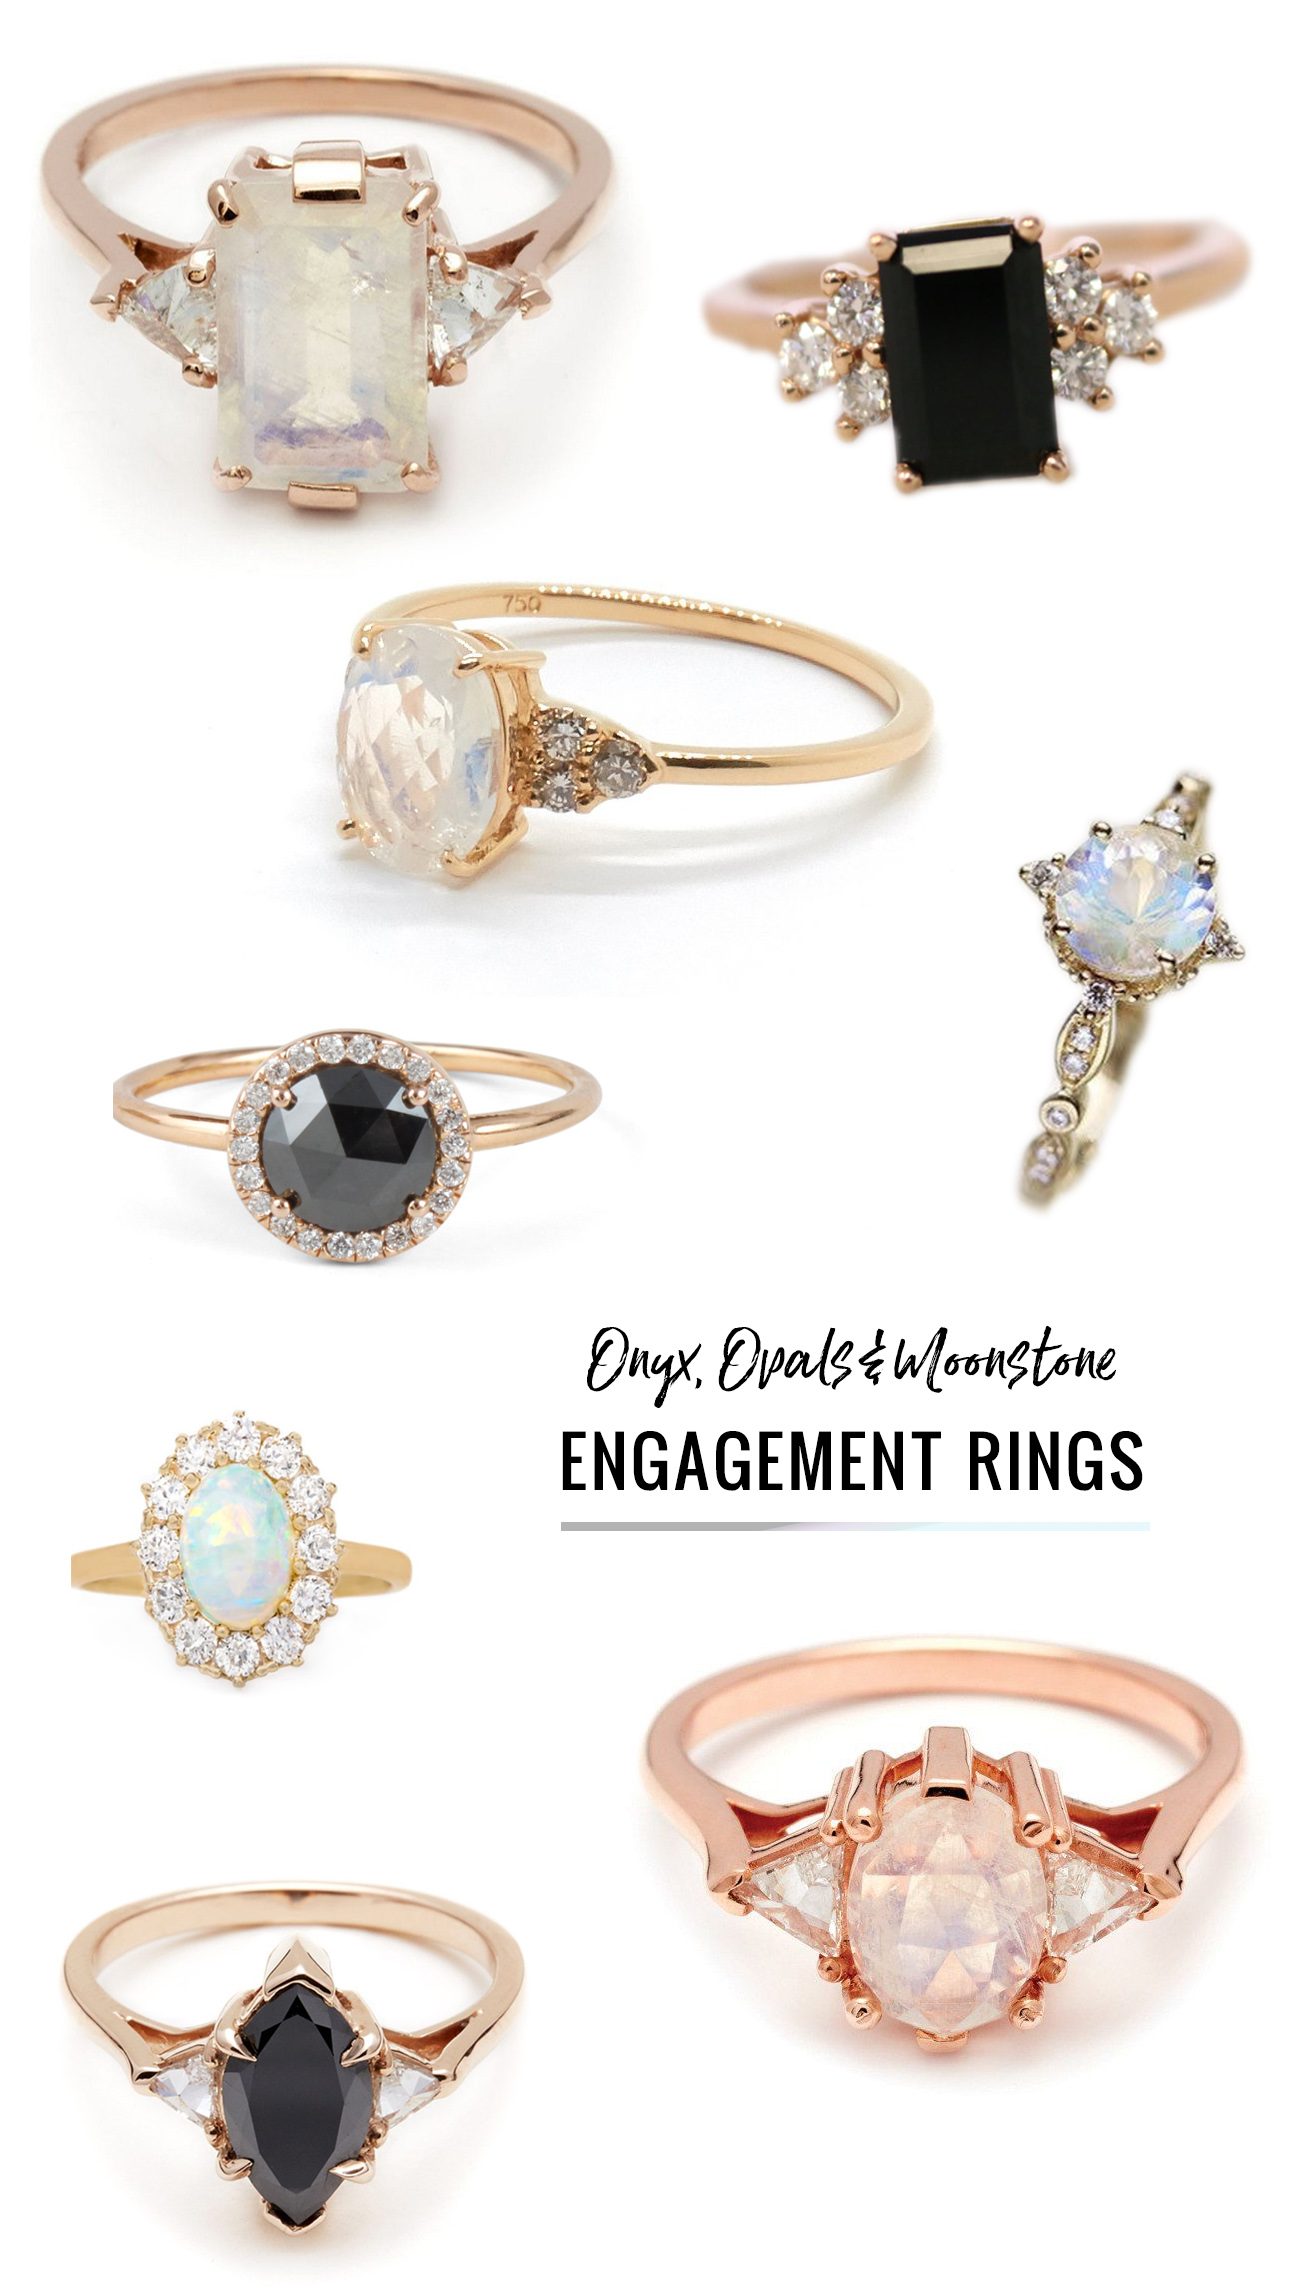 Ditch The Diamond Alternative Engagement Rings Featuring